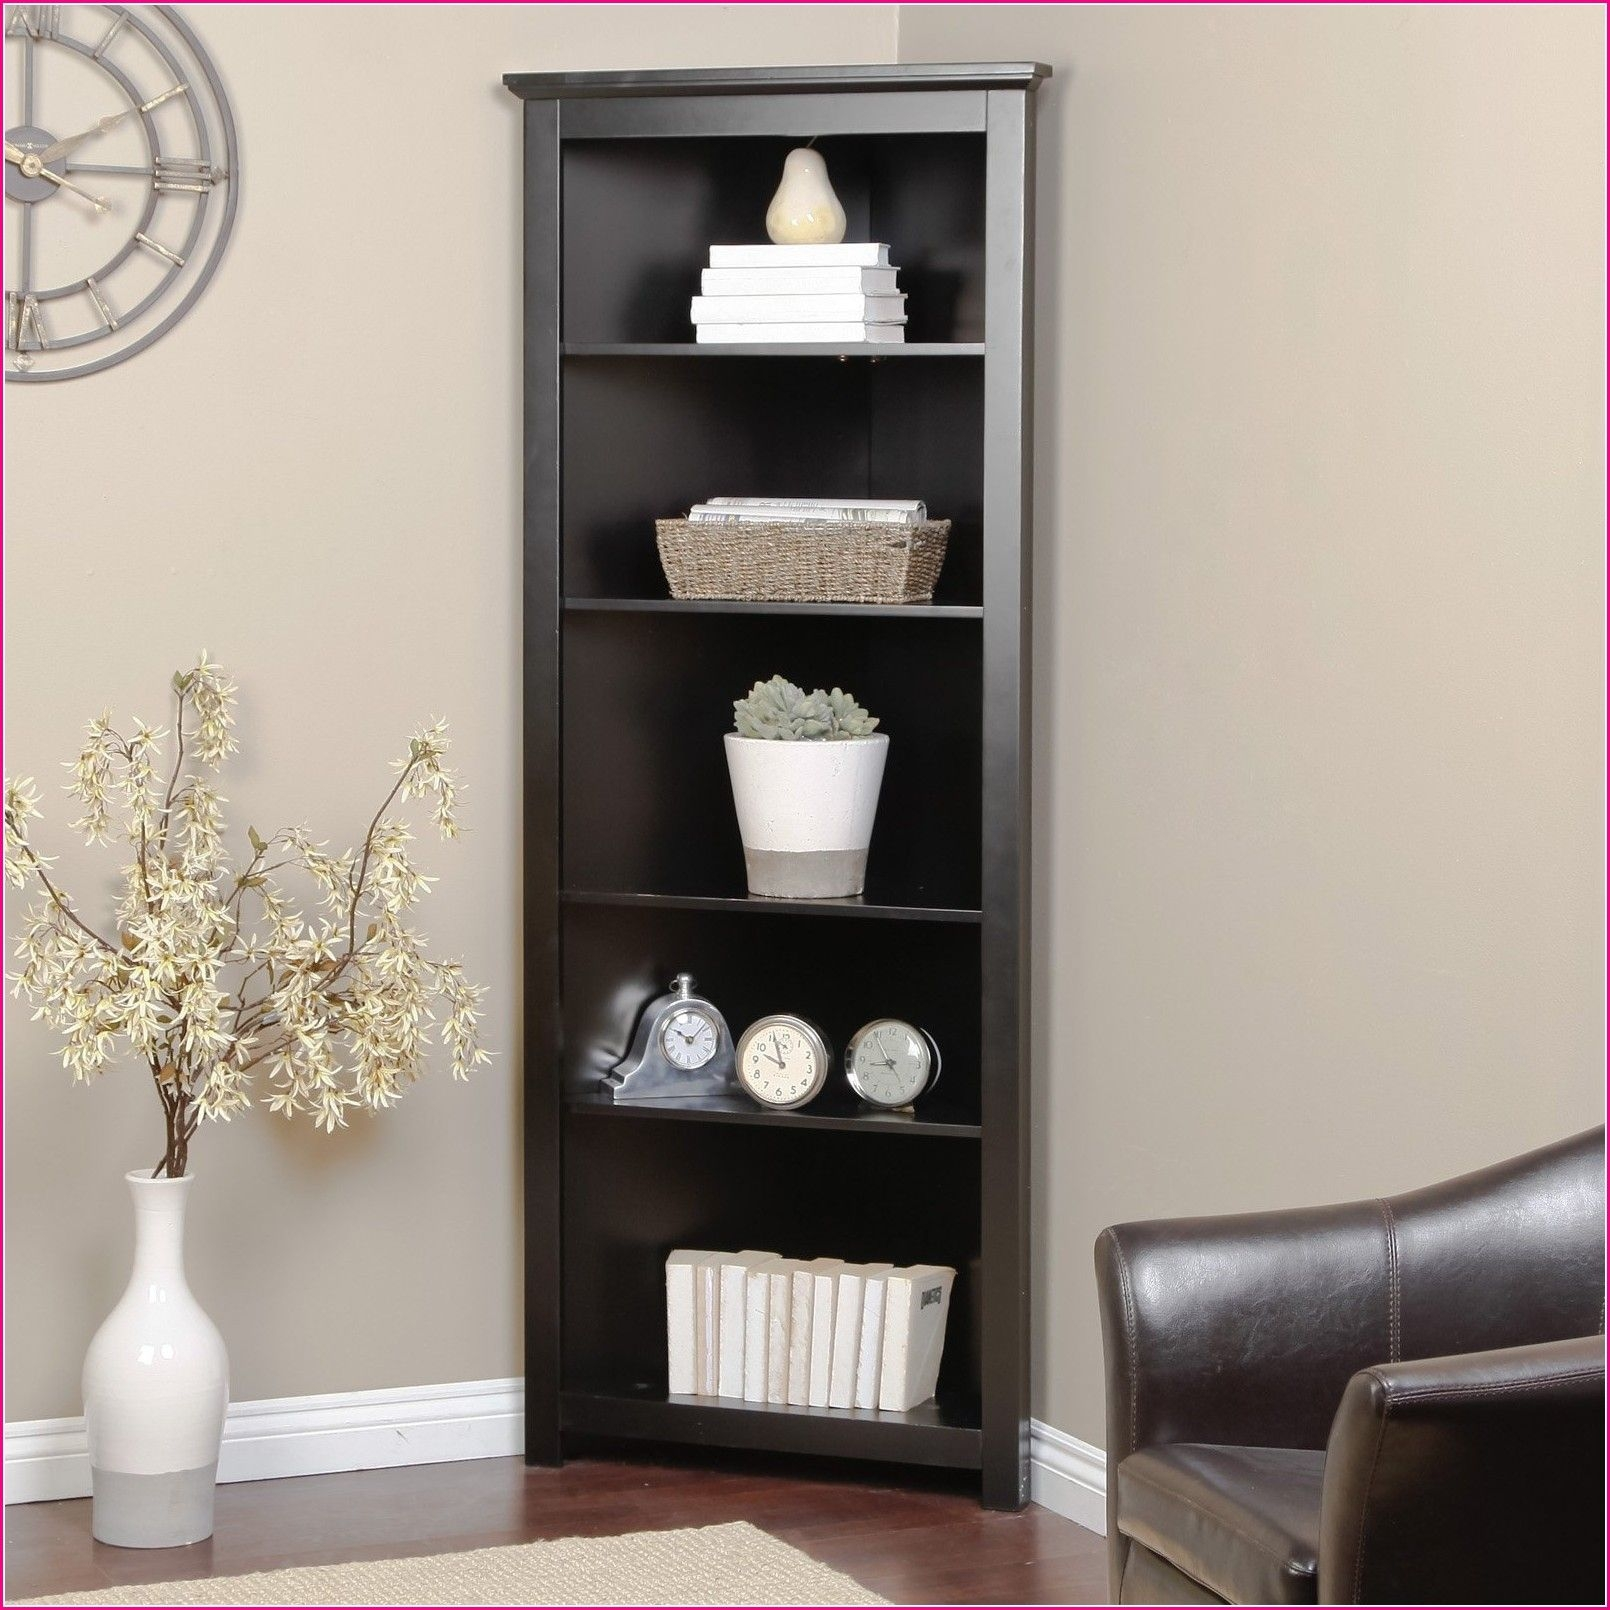 Use of corner shelf units for living room